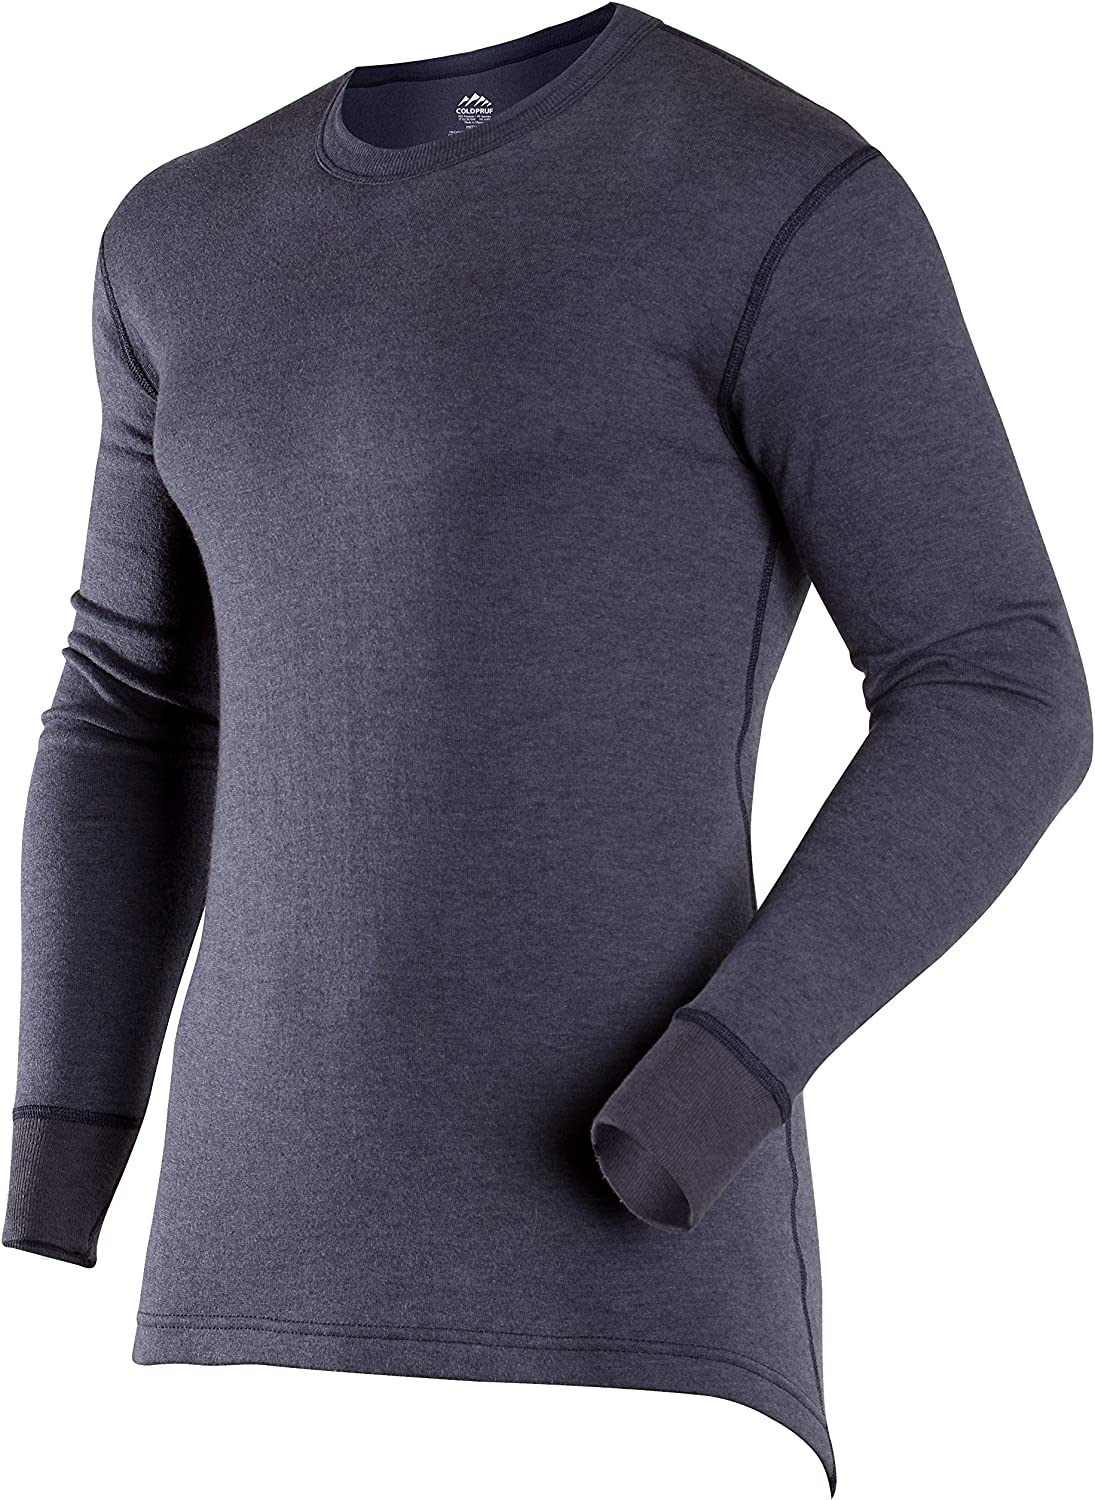 ColdPruf Men's Authentic Dual Layer Long Sleeve Crew Neck Base Layer Top, Navy, Medium Tall